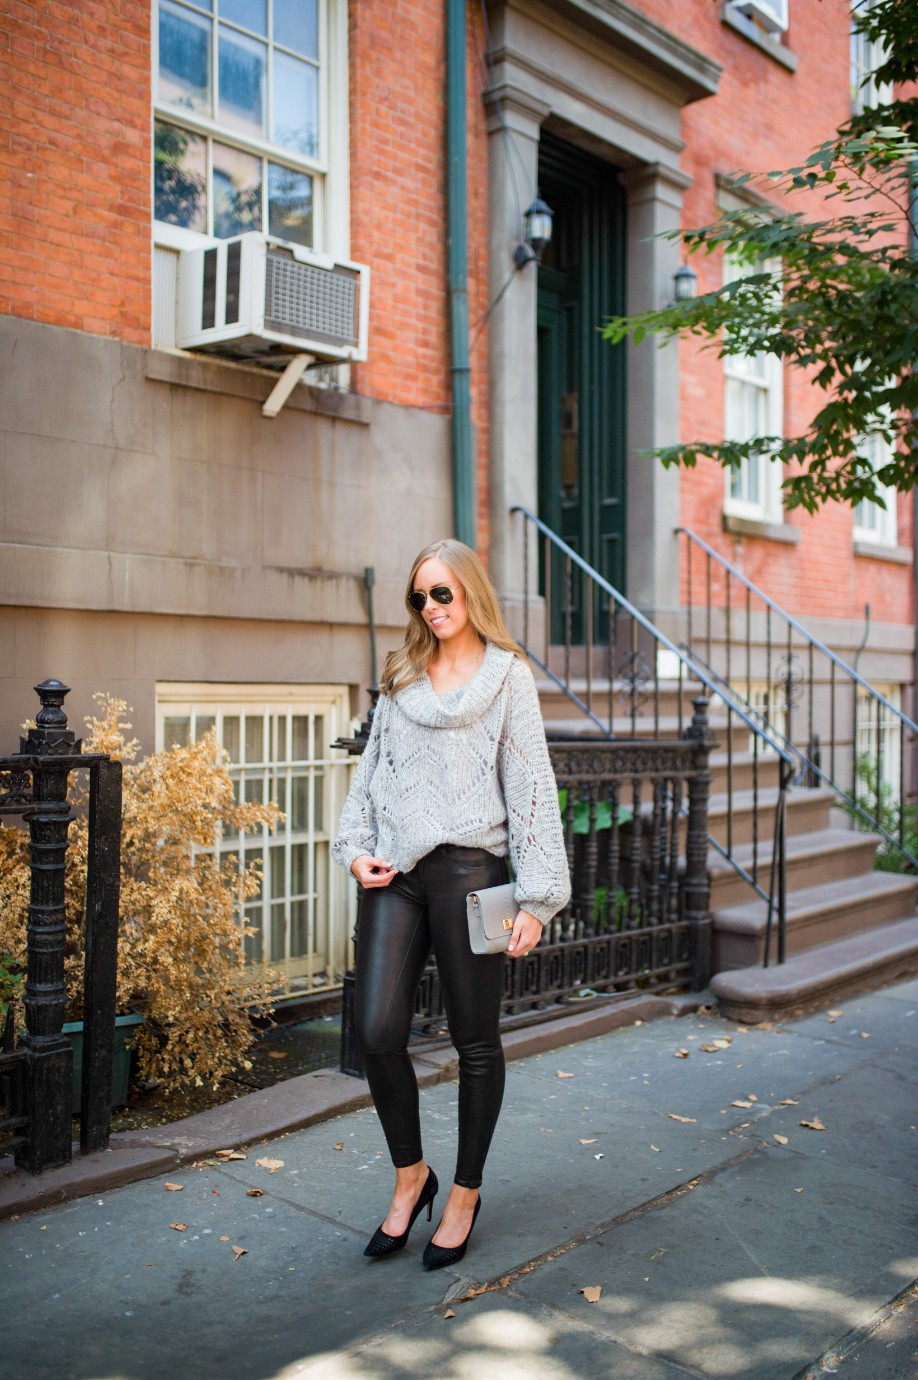 leather pants outfit and grey knit sweater fashion blogger outfit ideas fall winter style lauren slade style elixir 8